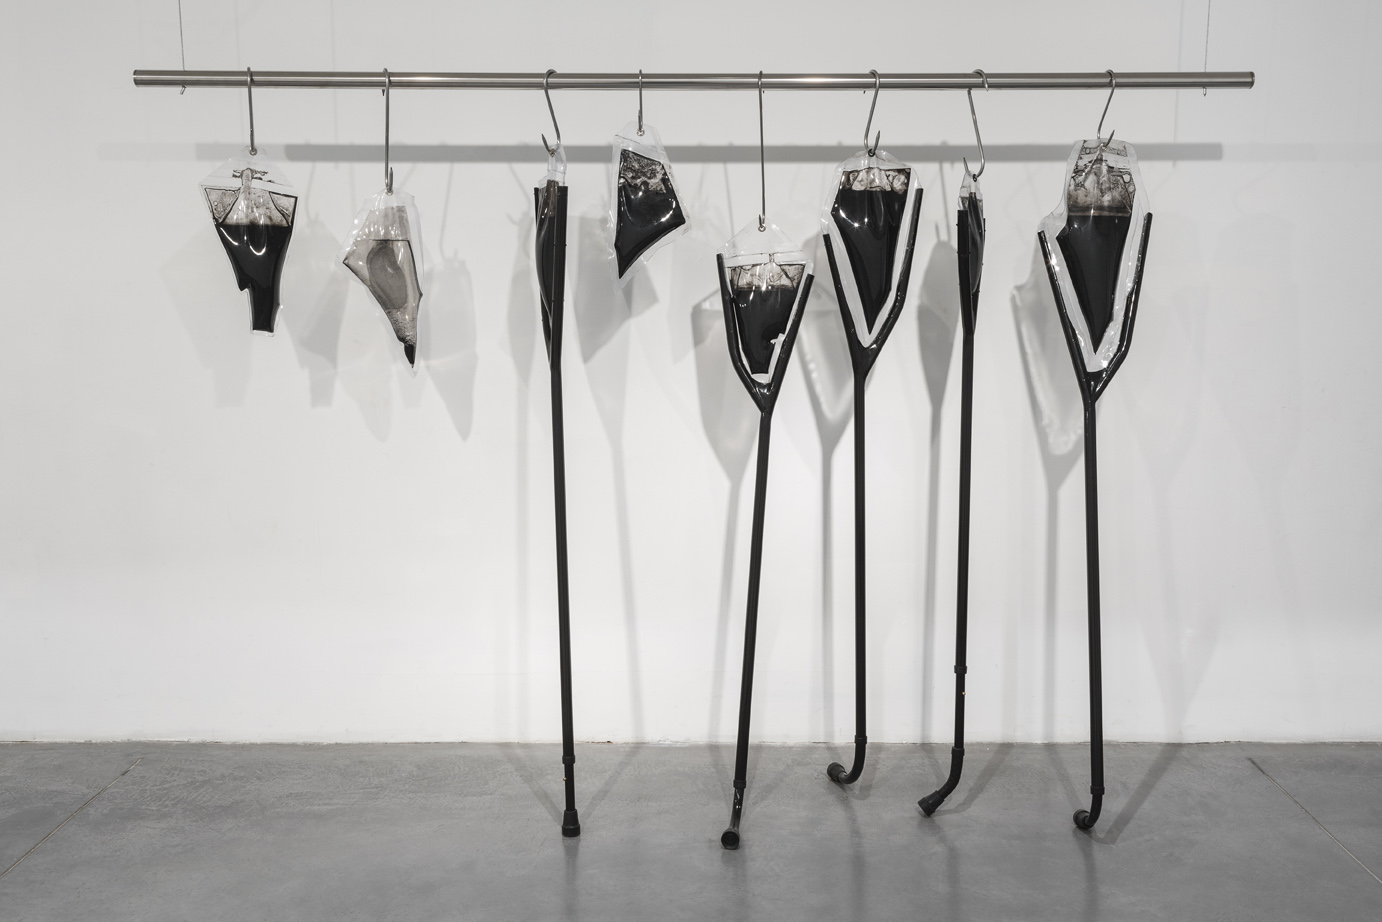 Untitled (from the project: Unreasonable Doubt), 2018, crutches, whips, metals, PVC, ink, water, 250x172x50 cm